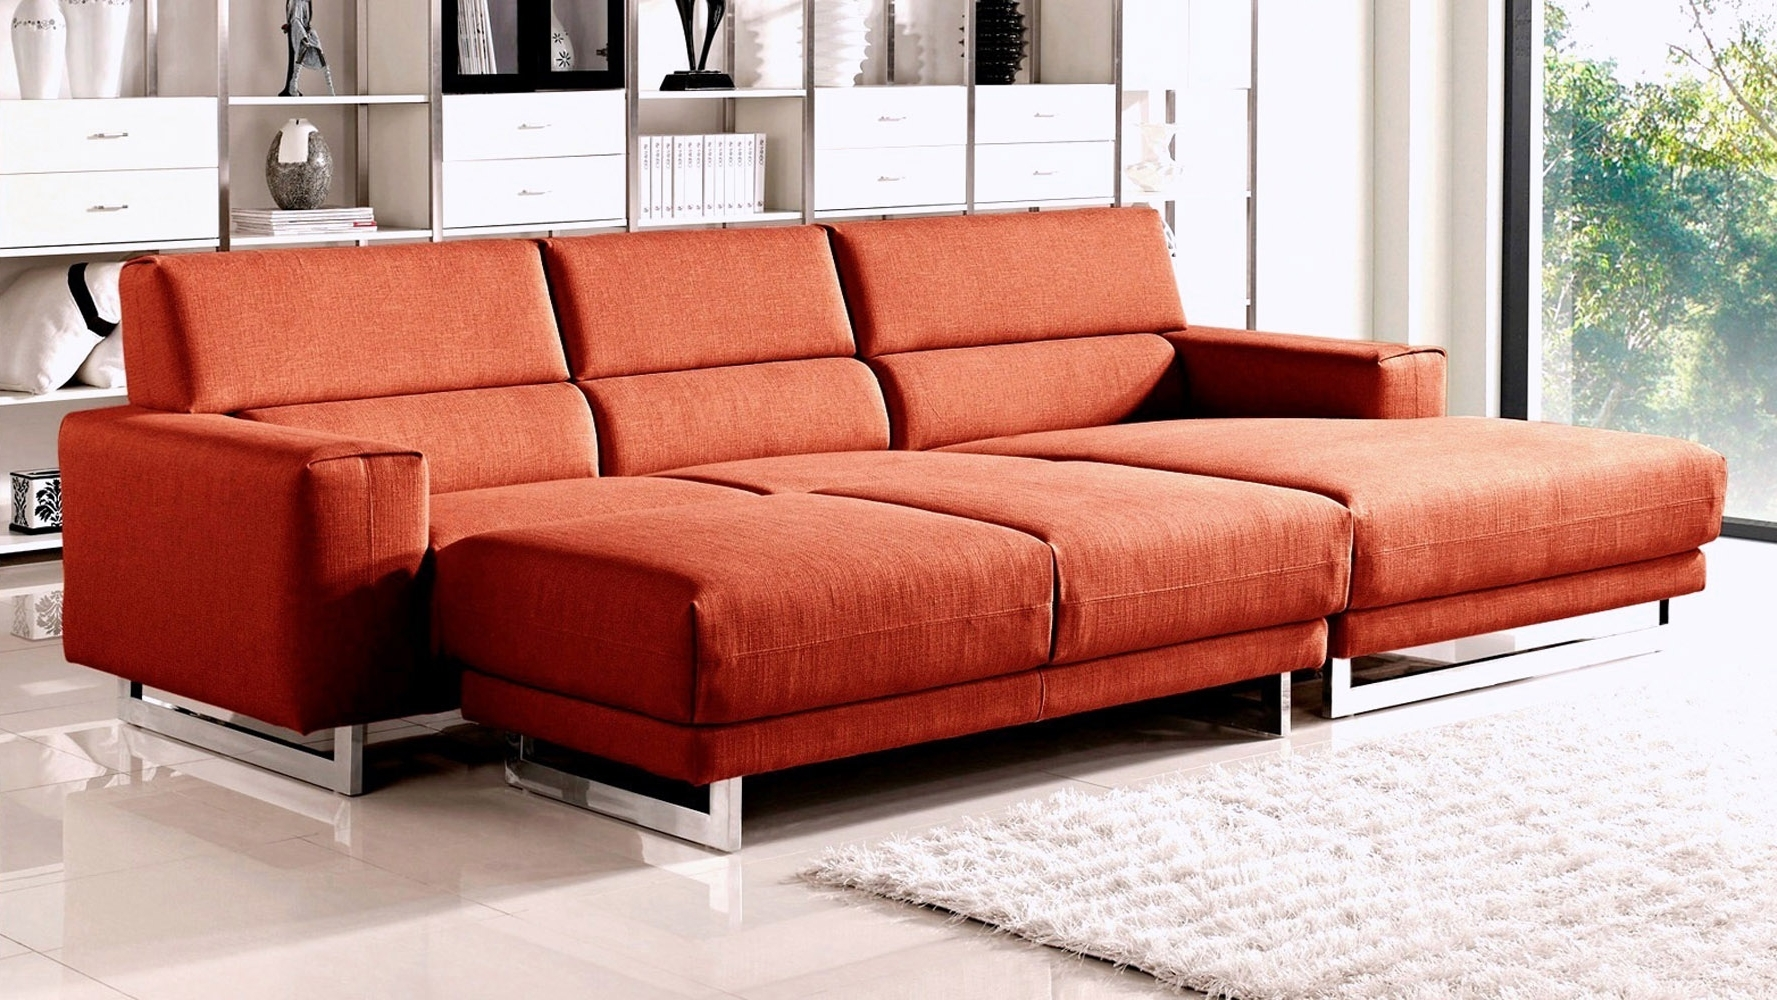 Ashley Furniture Black Friday Hampton Leather Reversible Sectional Pertaining To Best And Newest Sectional Sleeper Sofas With Ottoman (View 4 of 20)